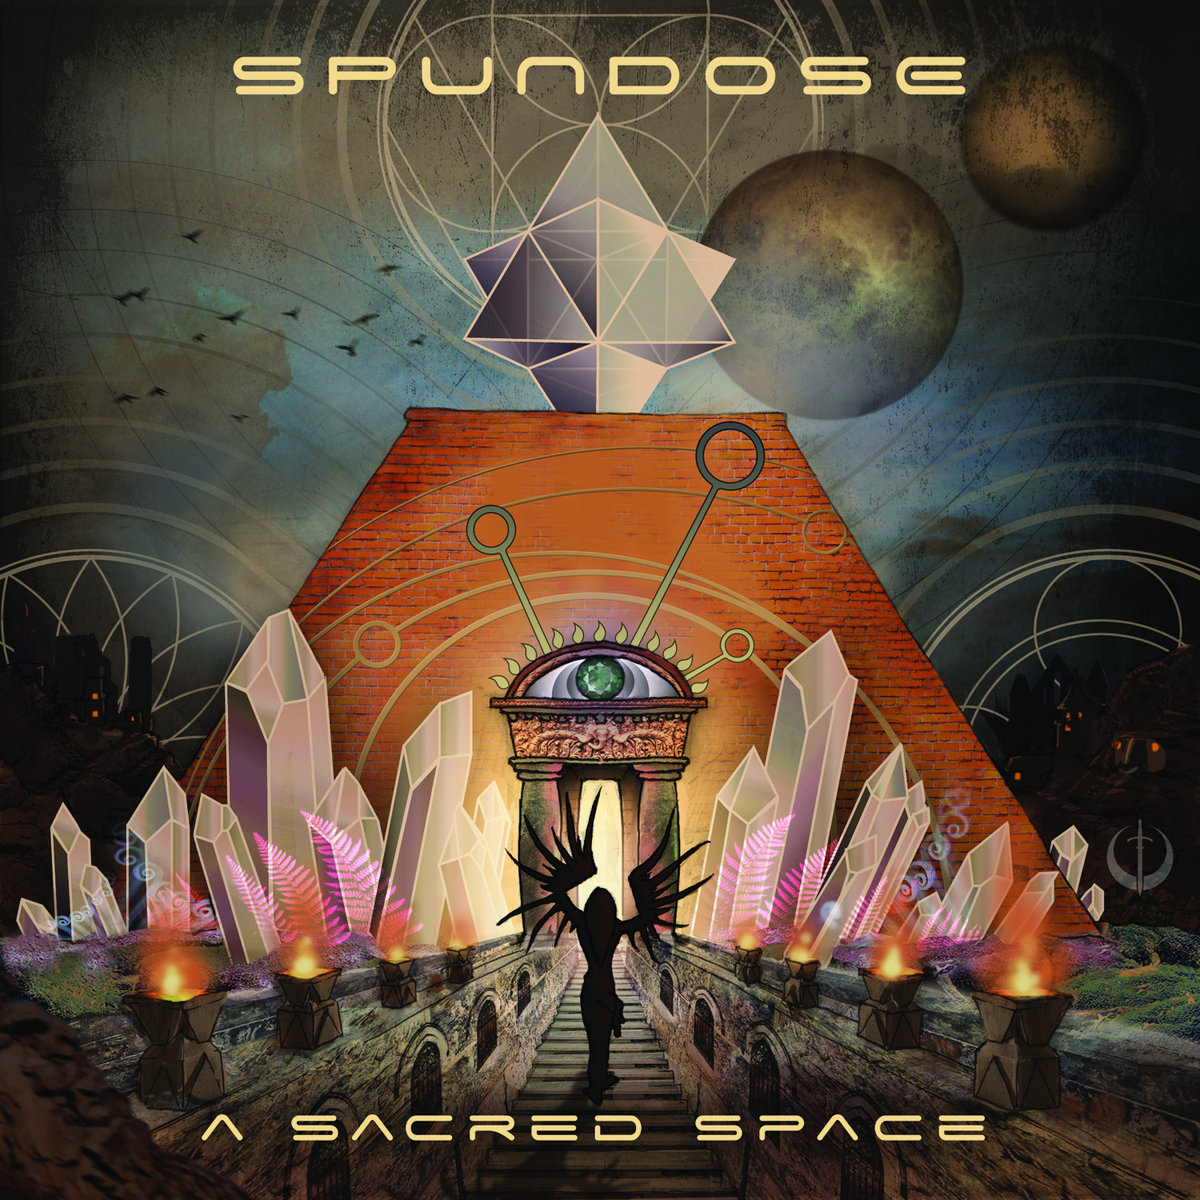 Spundose - I Am We Are Us Is You @ 'A Sacred Space' album (bass, electronic)